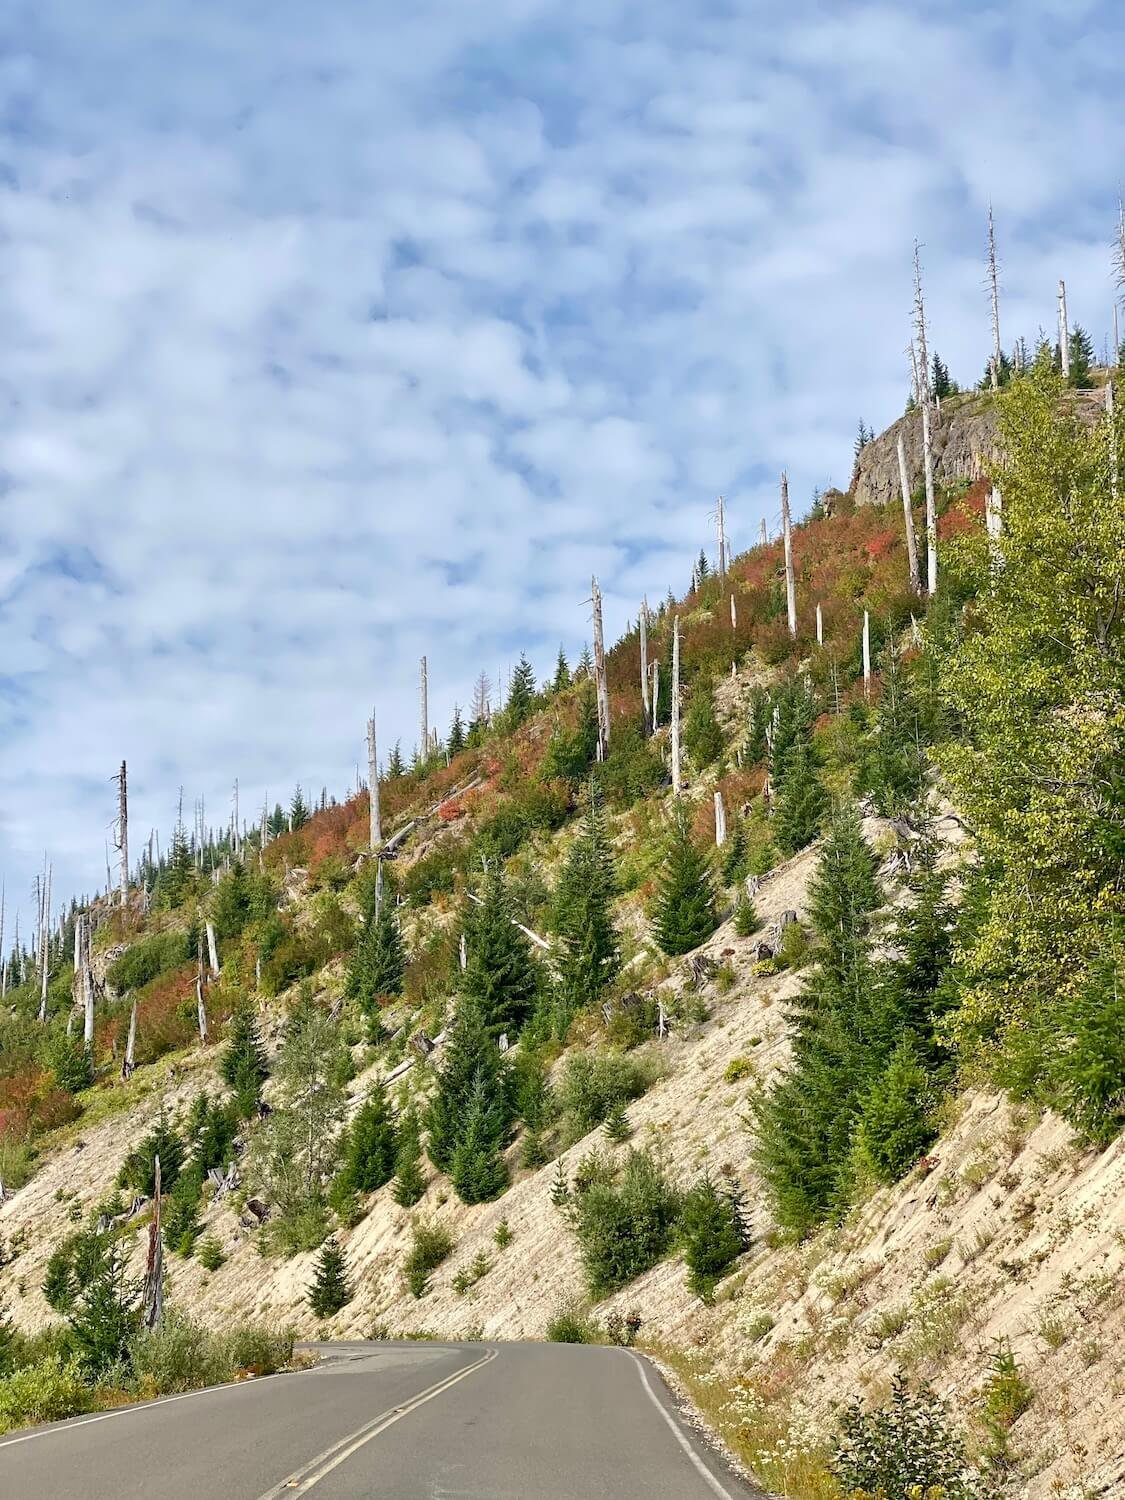 The slope of a former hill in the blast zone of Mount St. Helens sits along the roadway. The dead trees still rise up from the small fir trees and colorful shrubs.